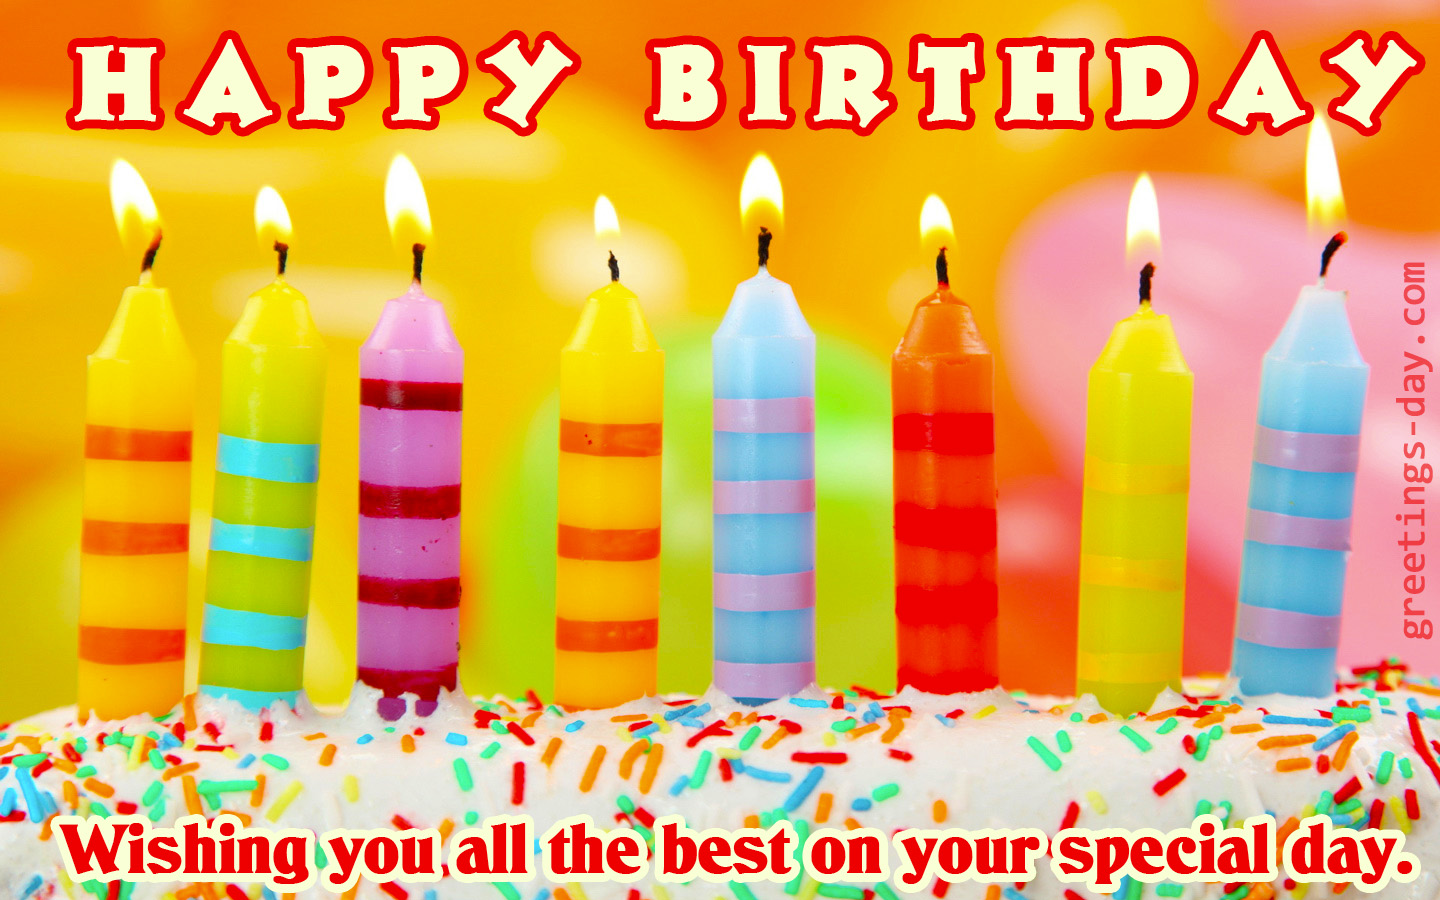 for friend Greeting Cards Pictures Animated GIFs – E Birthday Cards Animated